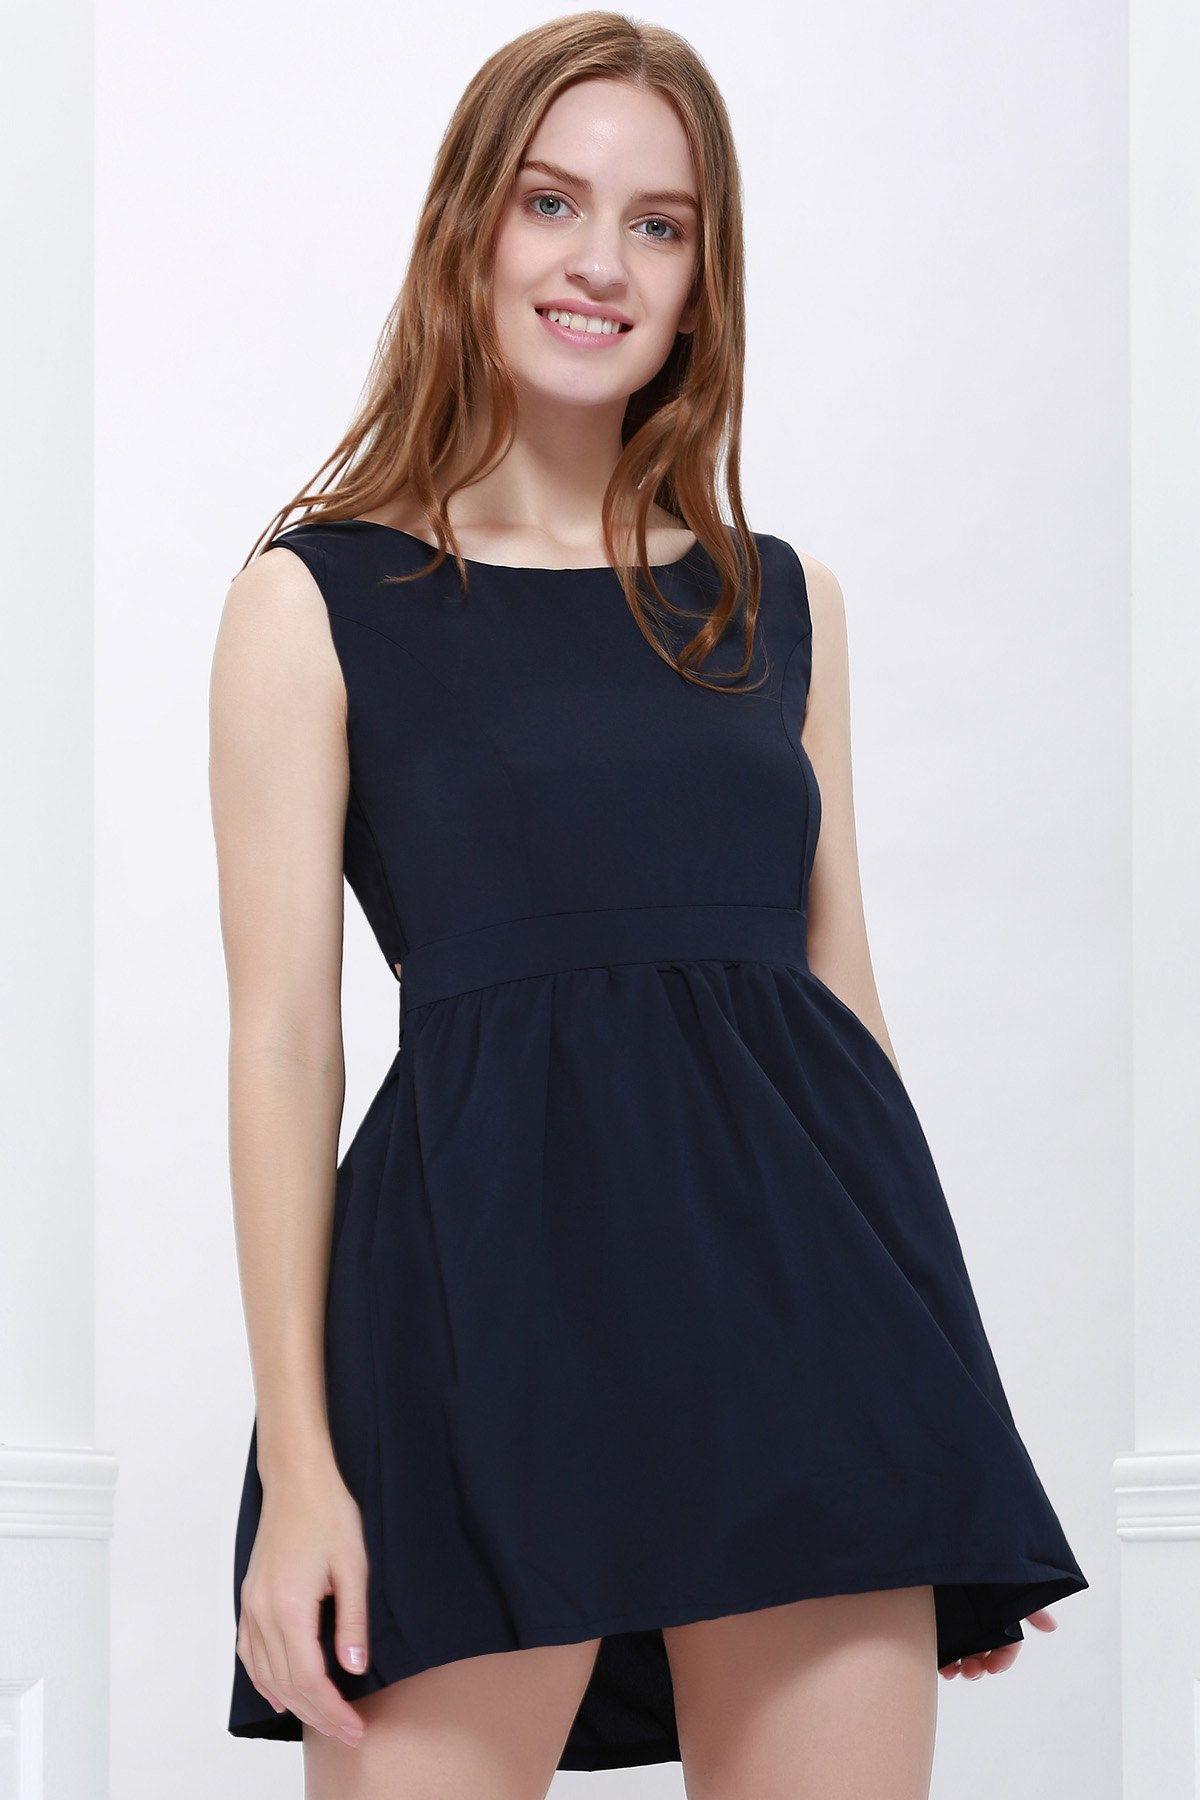 Women's Single Breasted Casual Scoop Neck Backless Self-Tie Sundress